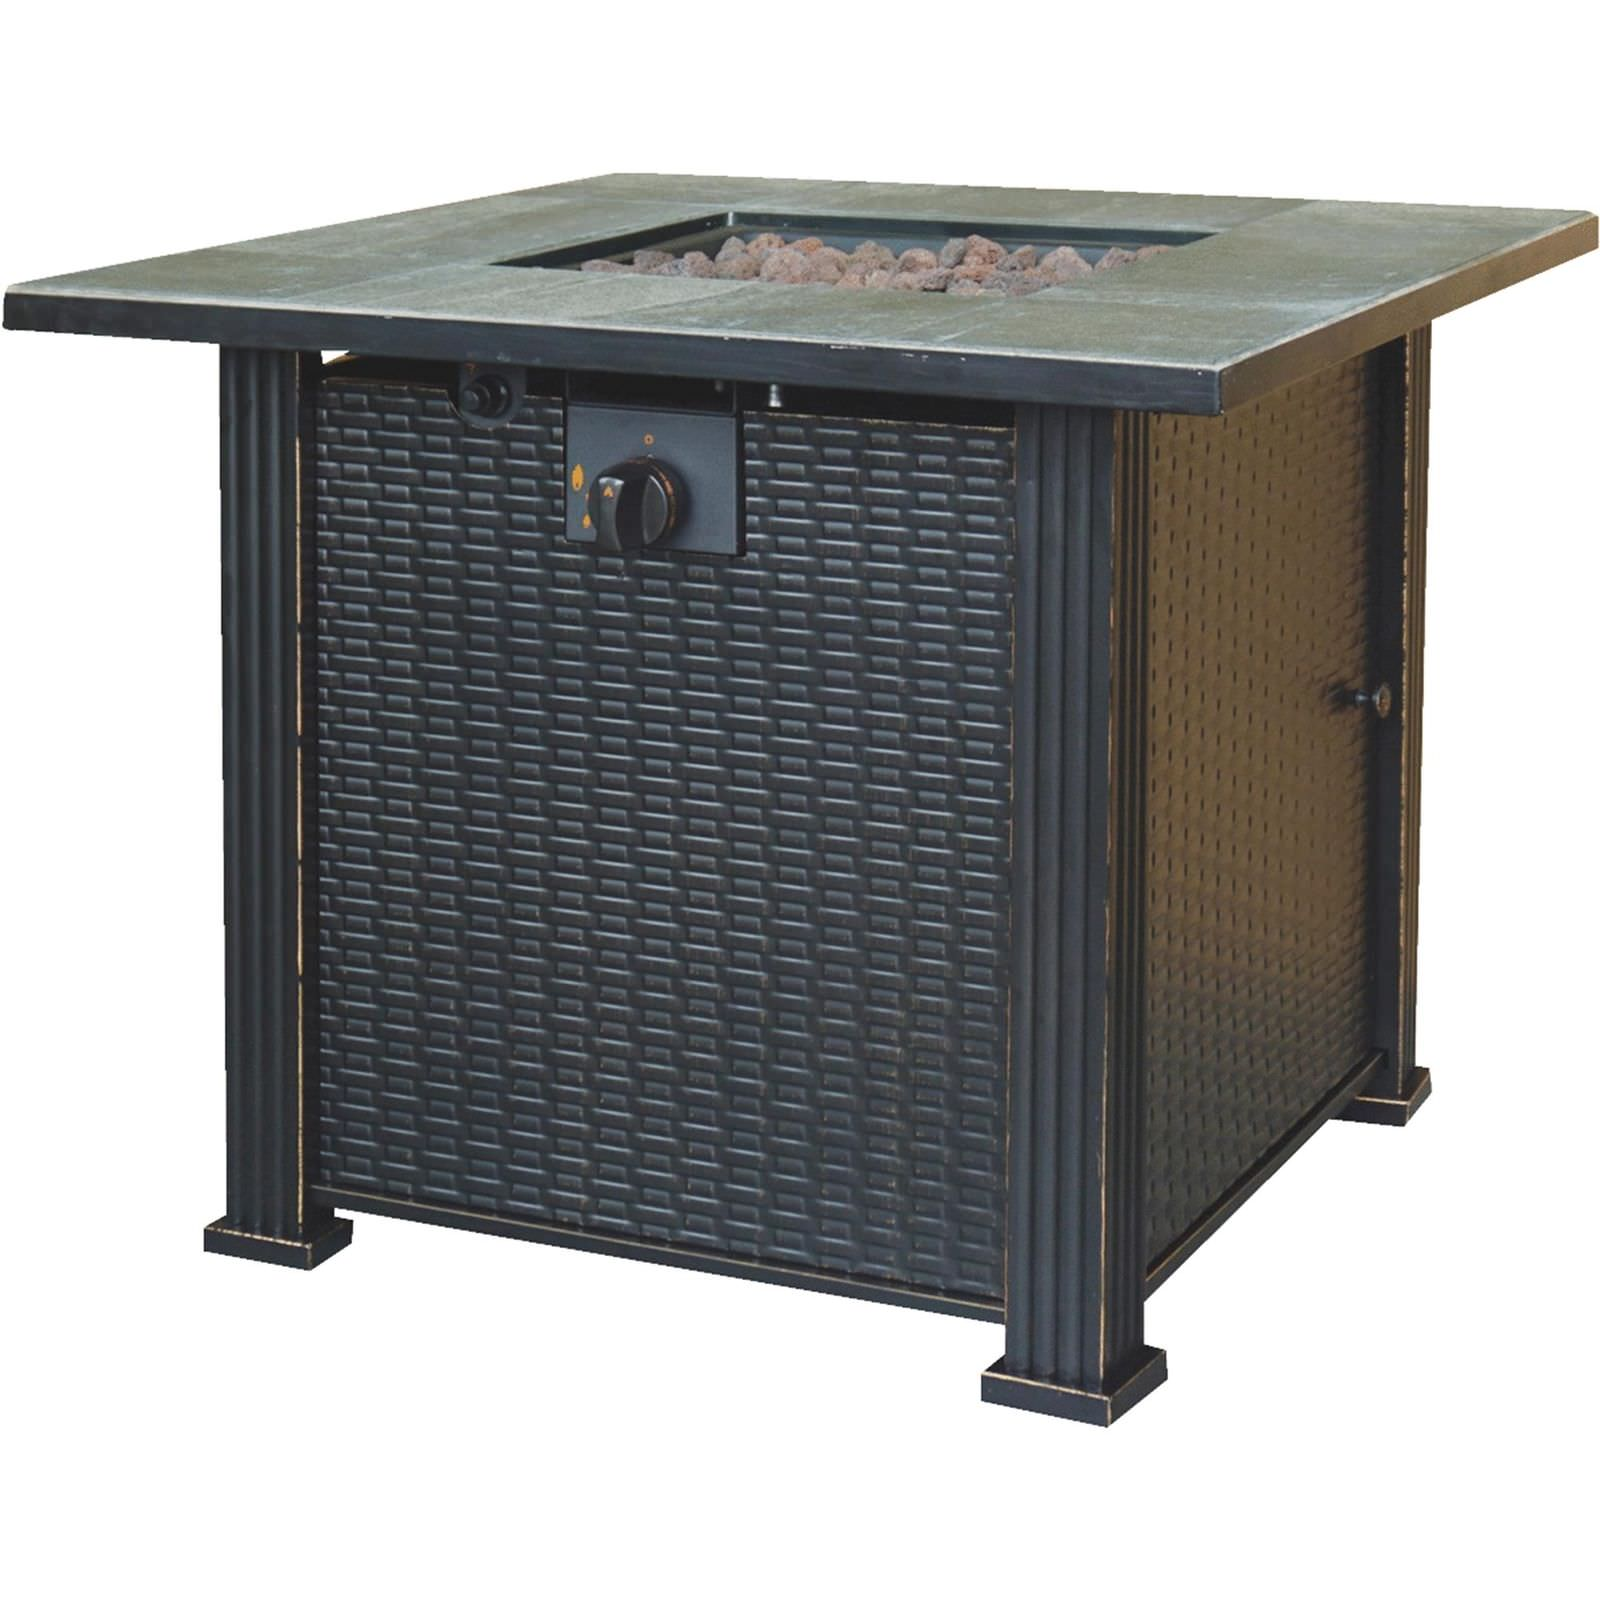 Terrace Park 30 In. Gas Firepit Table by Bond Manufacturing